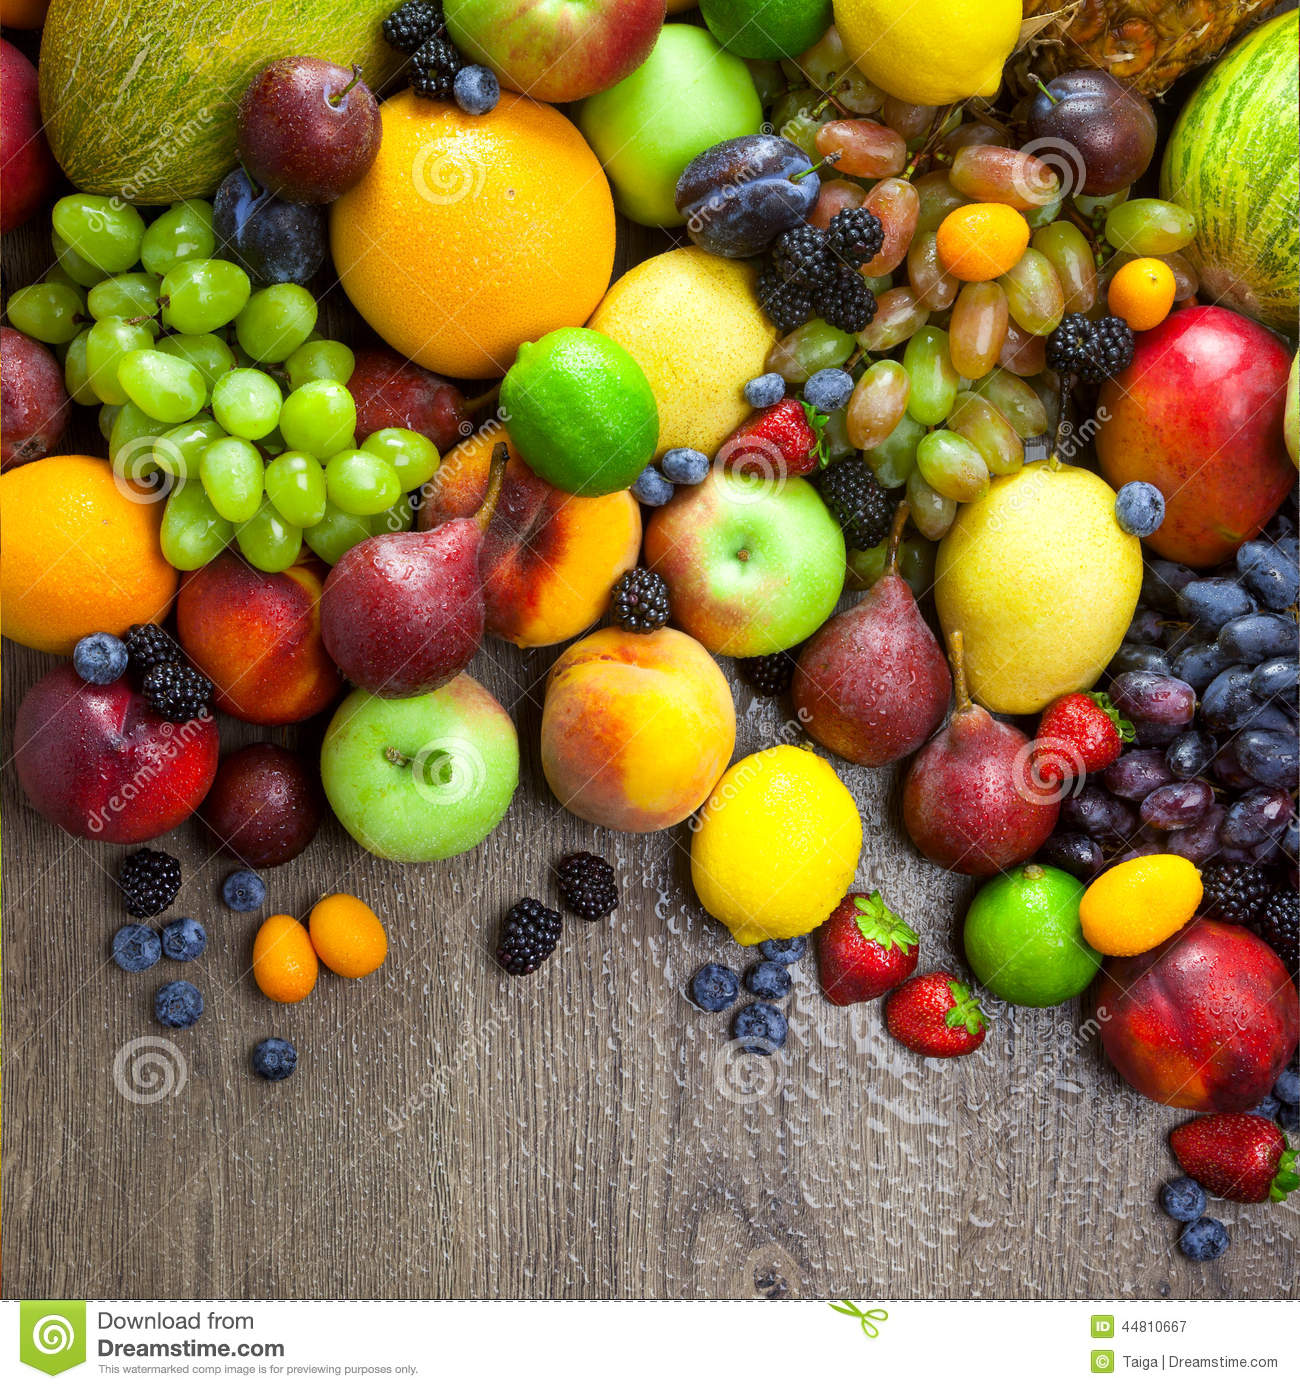 August 2014 Cpo Offers Table Jpg: Organic Fruits With Water Drops On Dark Wooden Table Stock